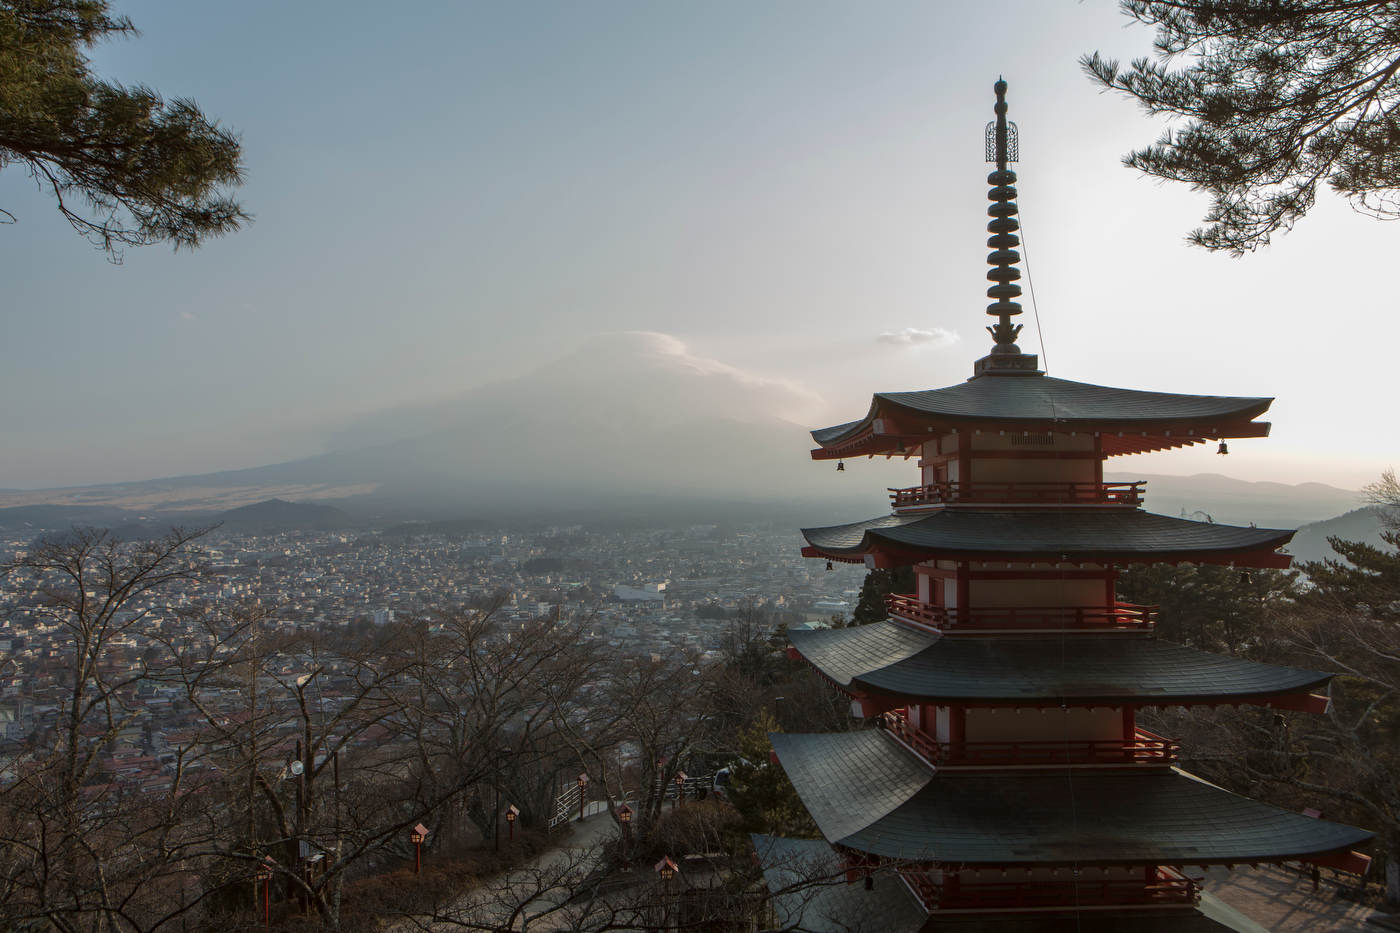 Clouds wrap the summit of Mt. Fuji at sunset behind the Chureito Pagoda.